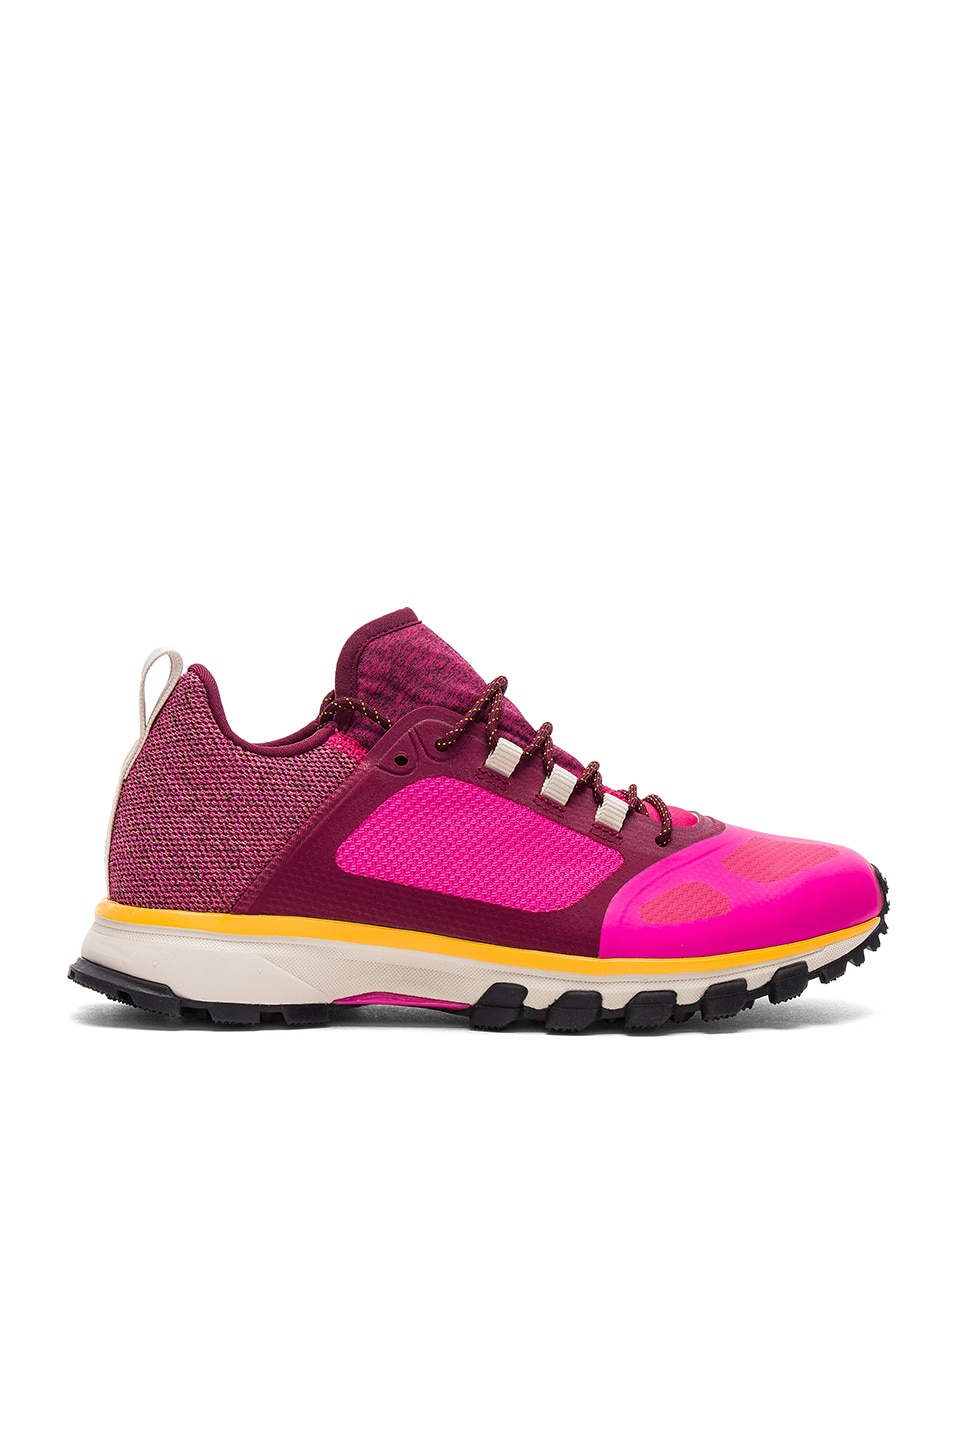 adidas by Stella McCartney Adizero XT Sneaker in Shock Pink & Ruby Red